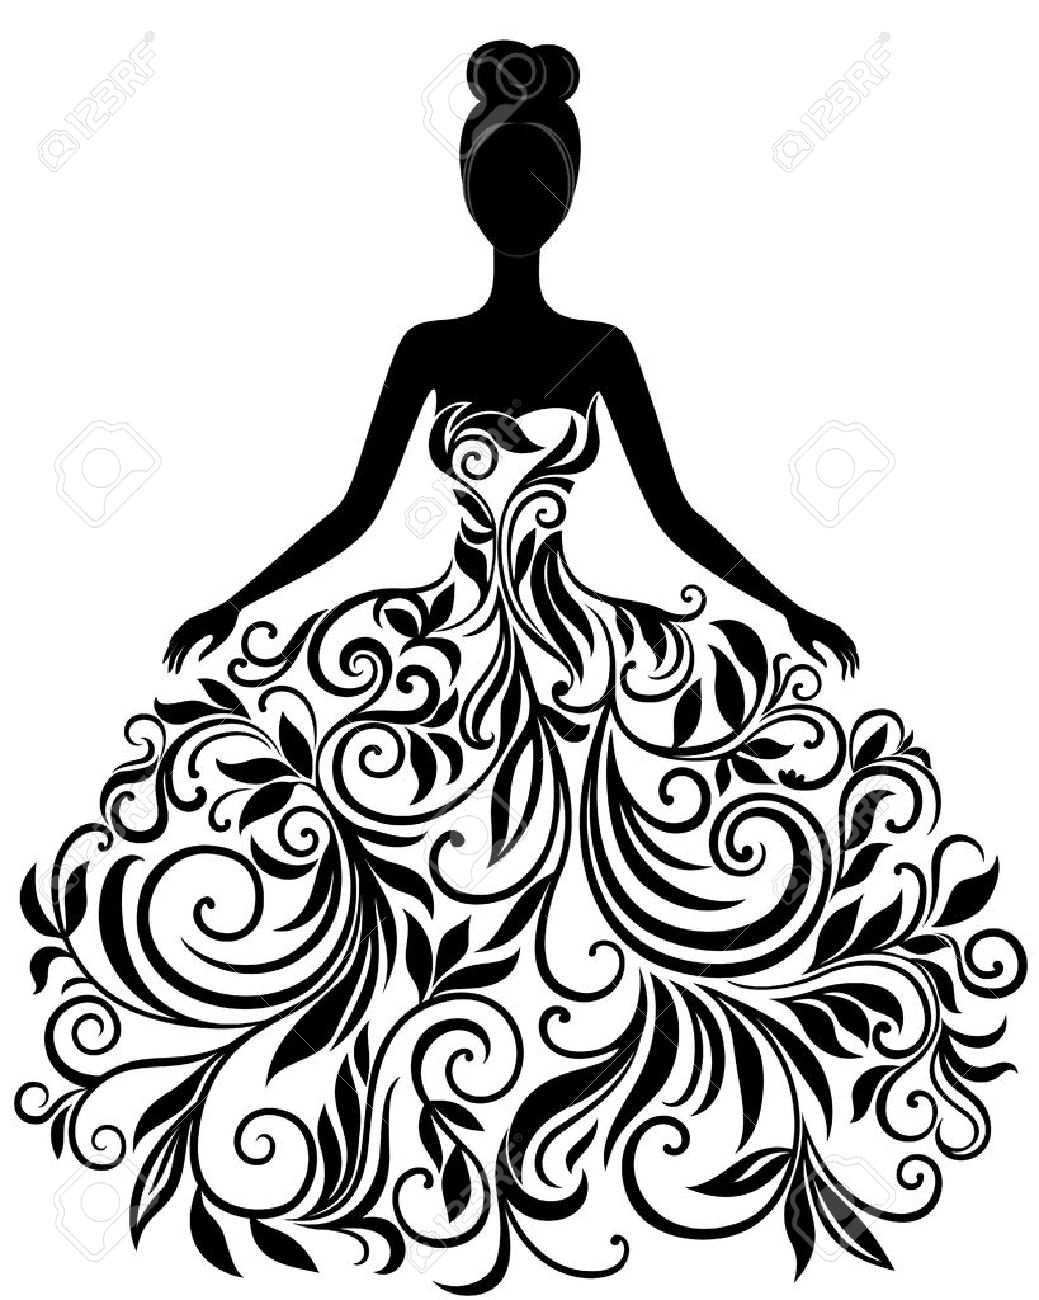 Black And White Elegant Artistic Wedding Dress Clipart & Clip Art.